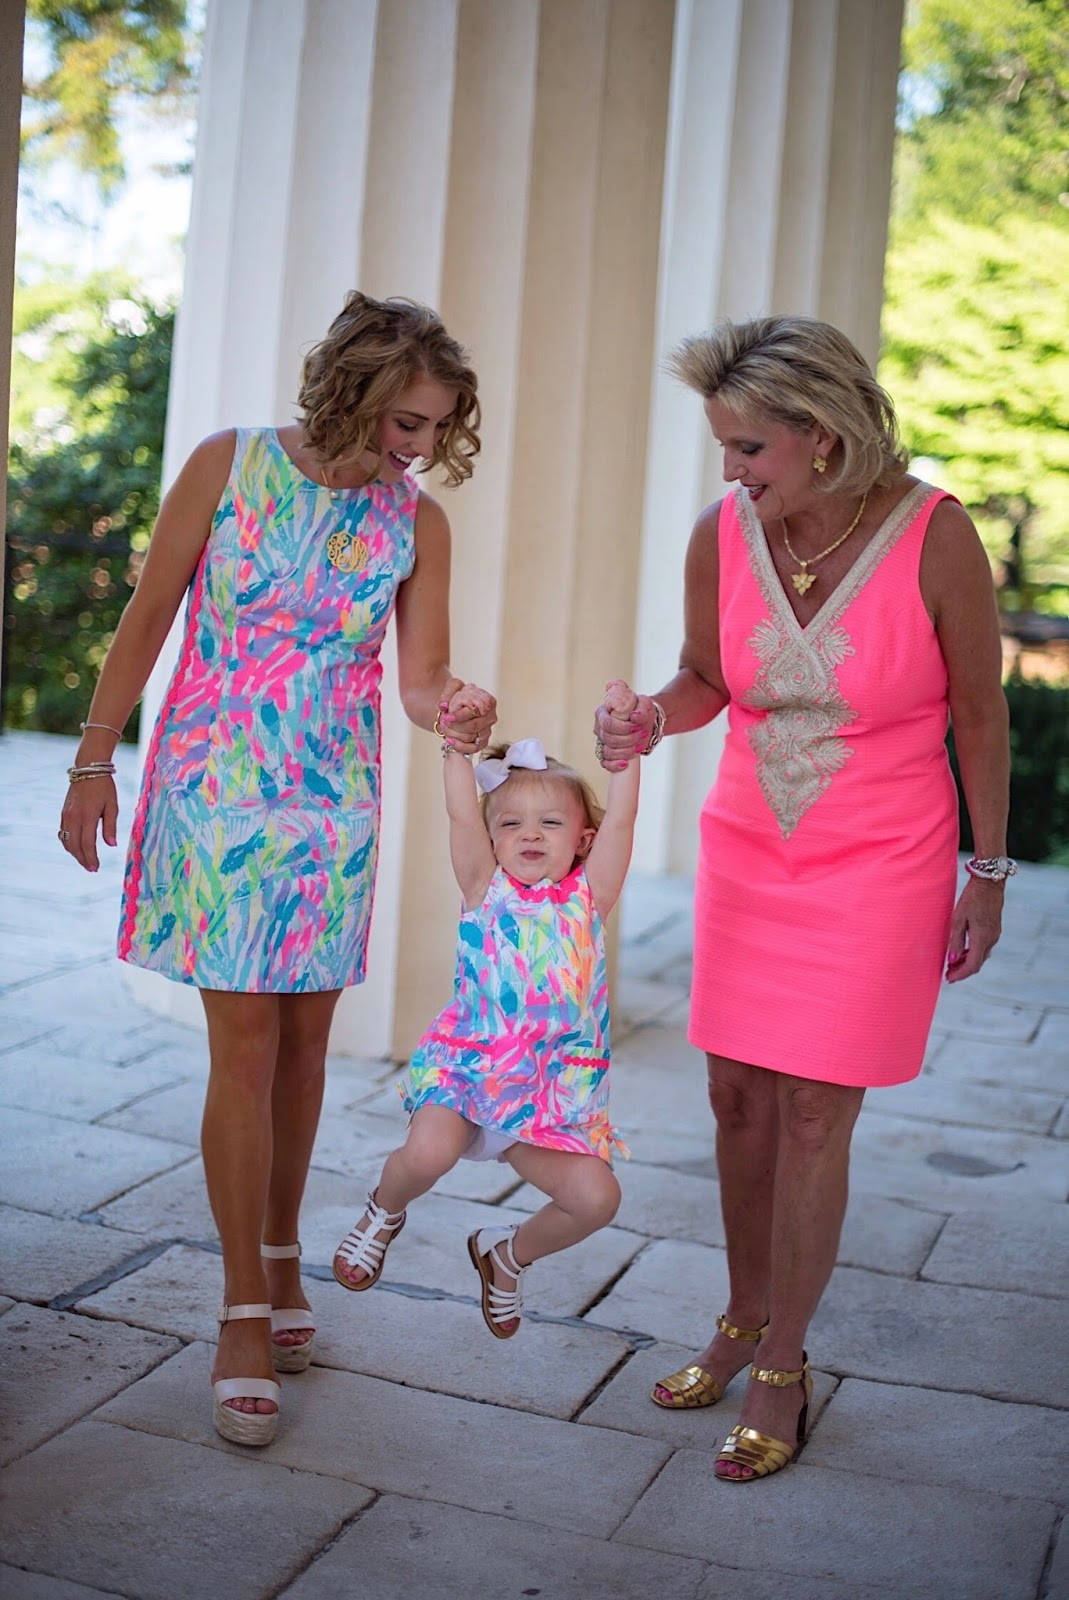 Matching in Lilly Pulitzer - Click through to see more on Something Delightful Blog!